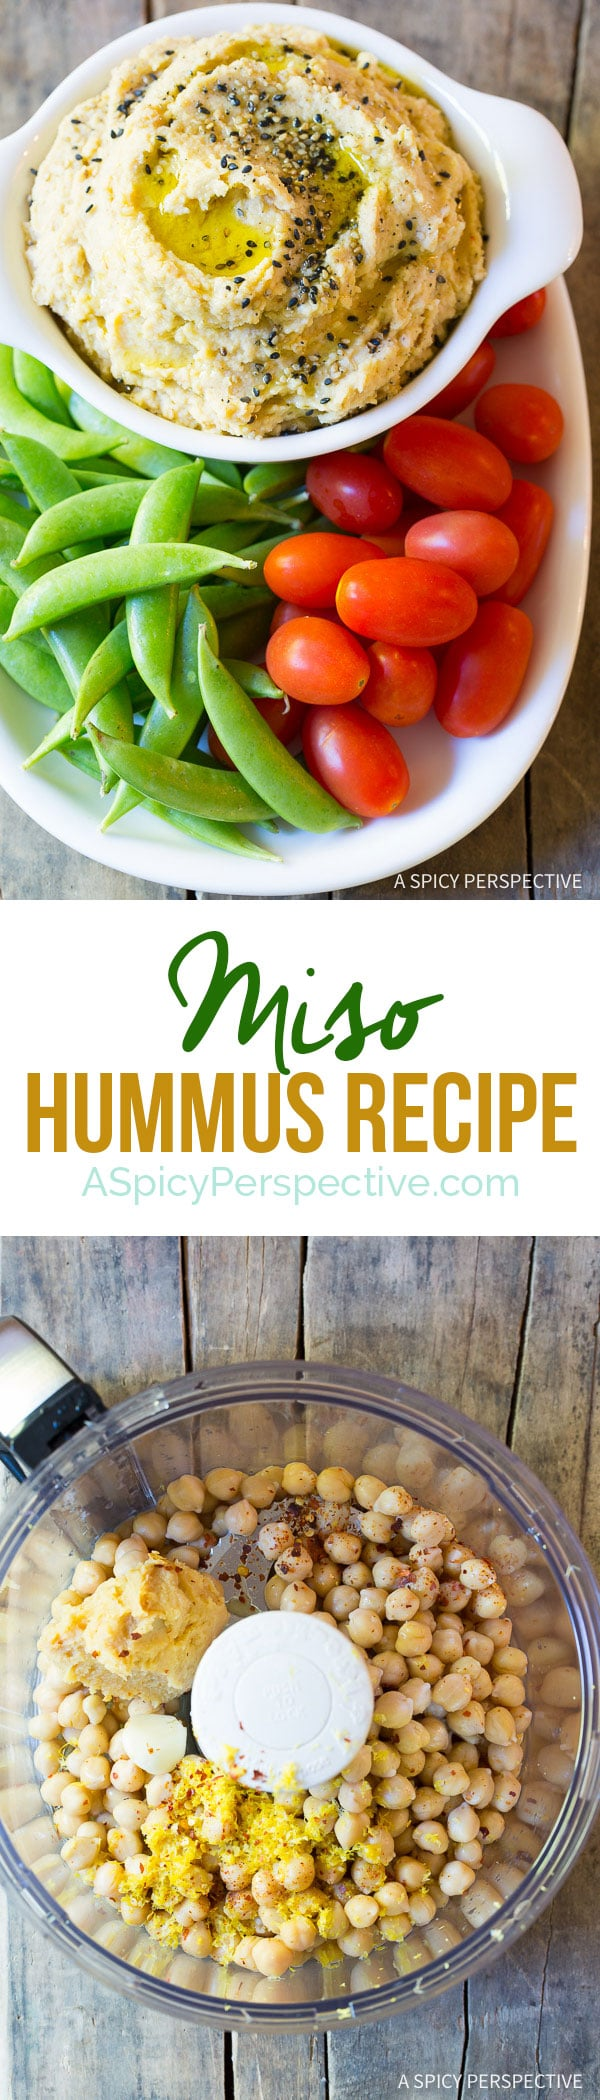 I love this Rich and Creamy Miso Hummus Recipe on ASpicyPerspective.com